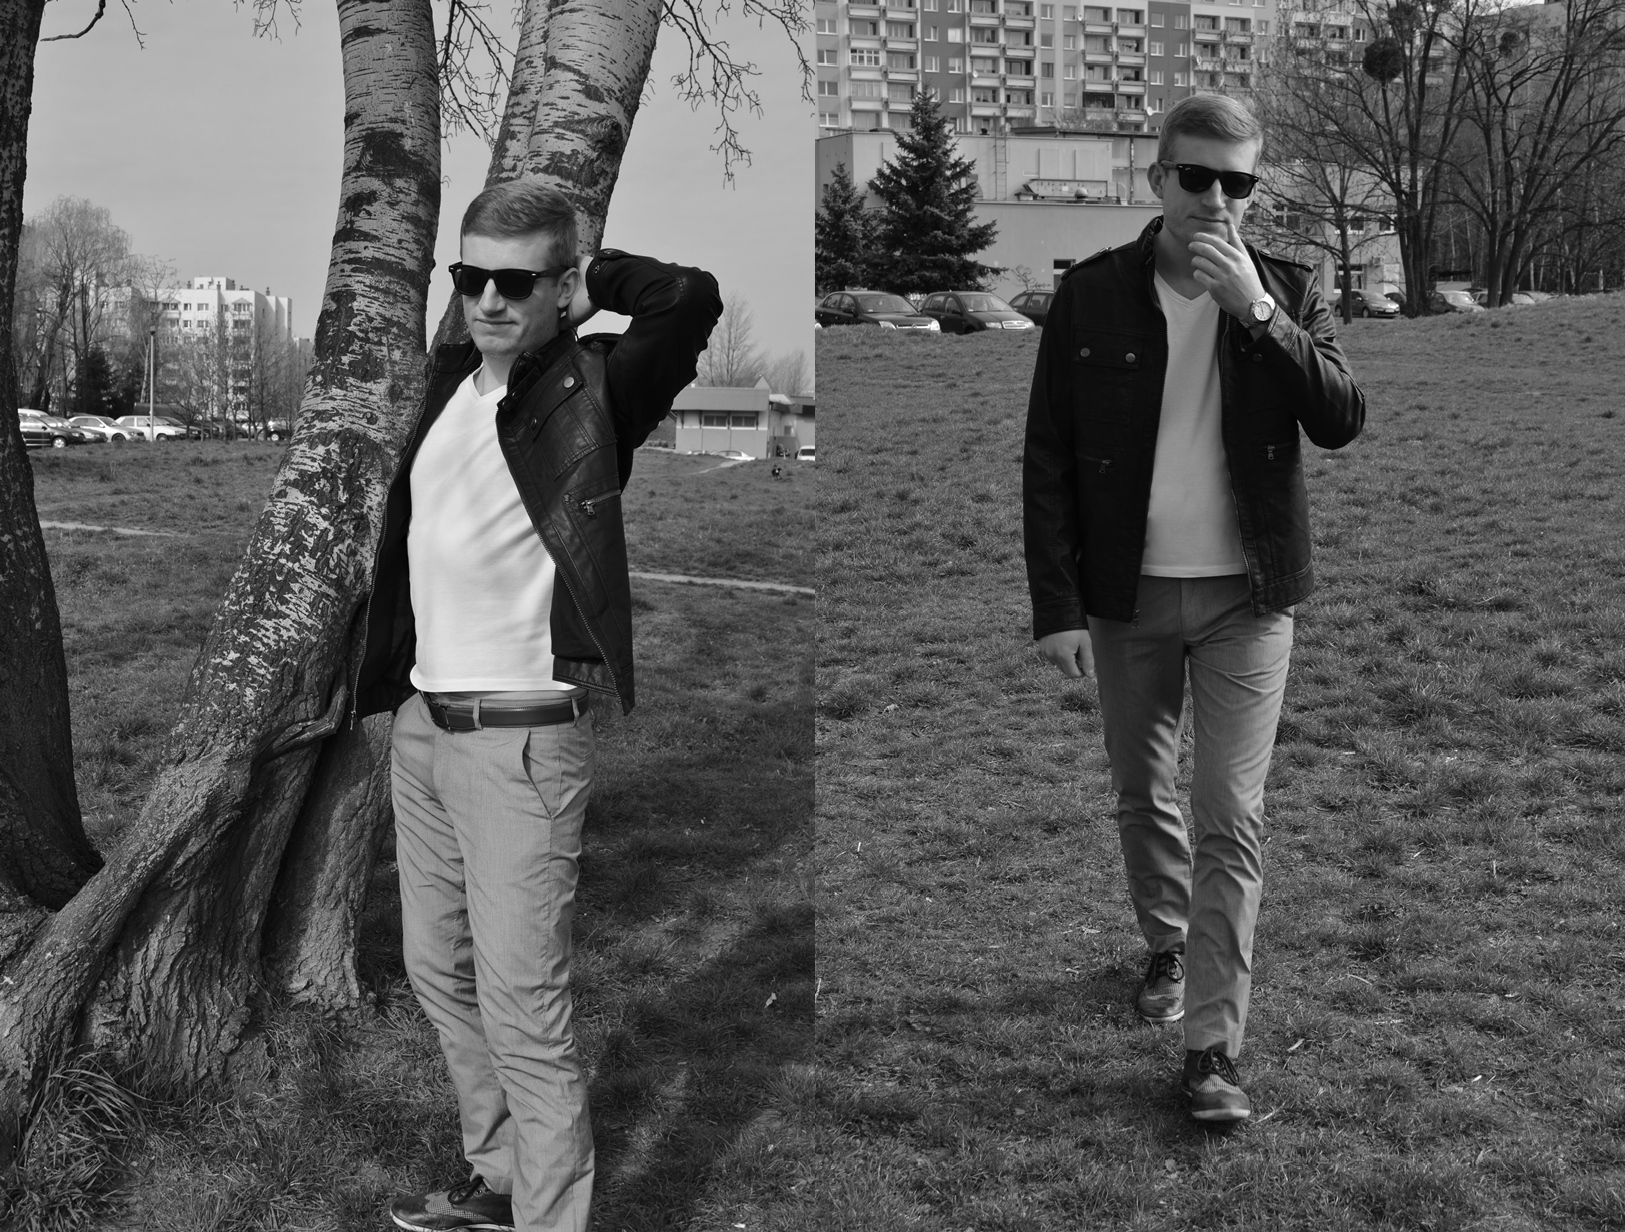 In style of James Dean!